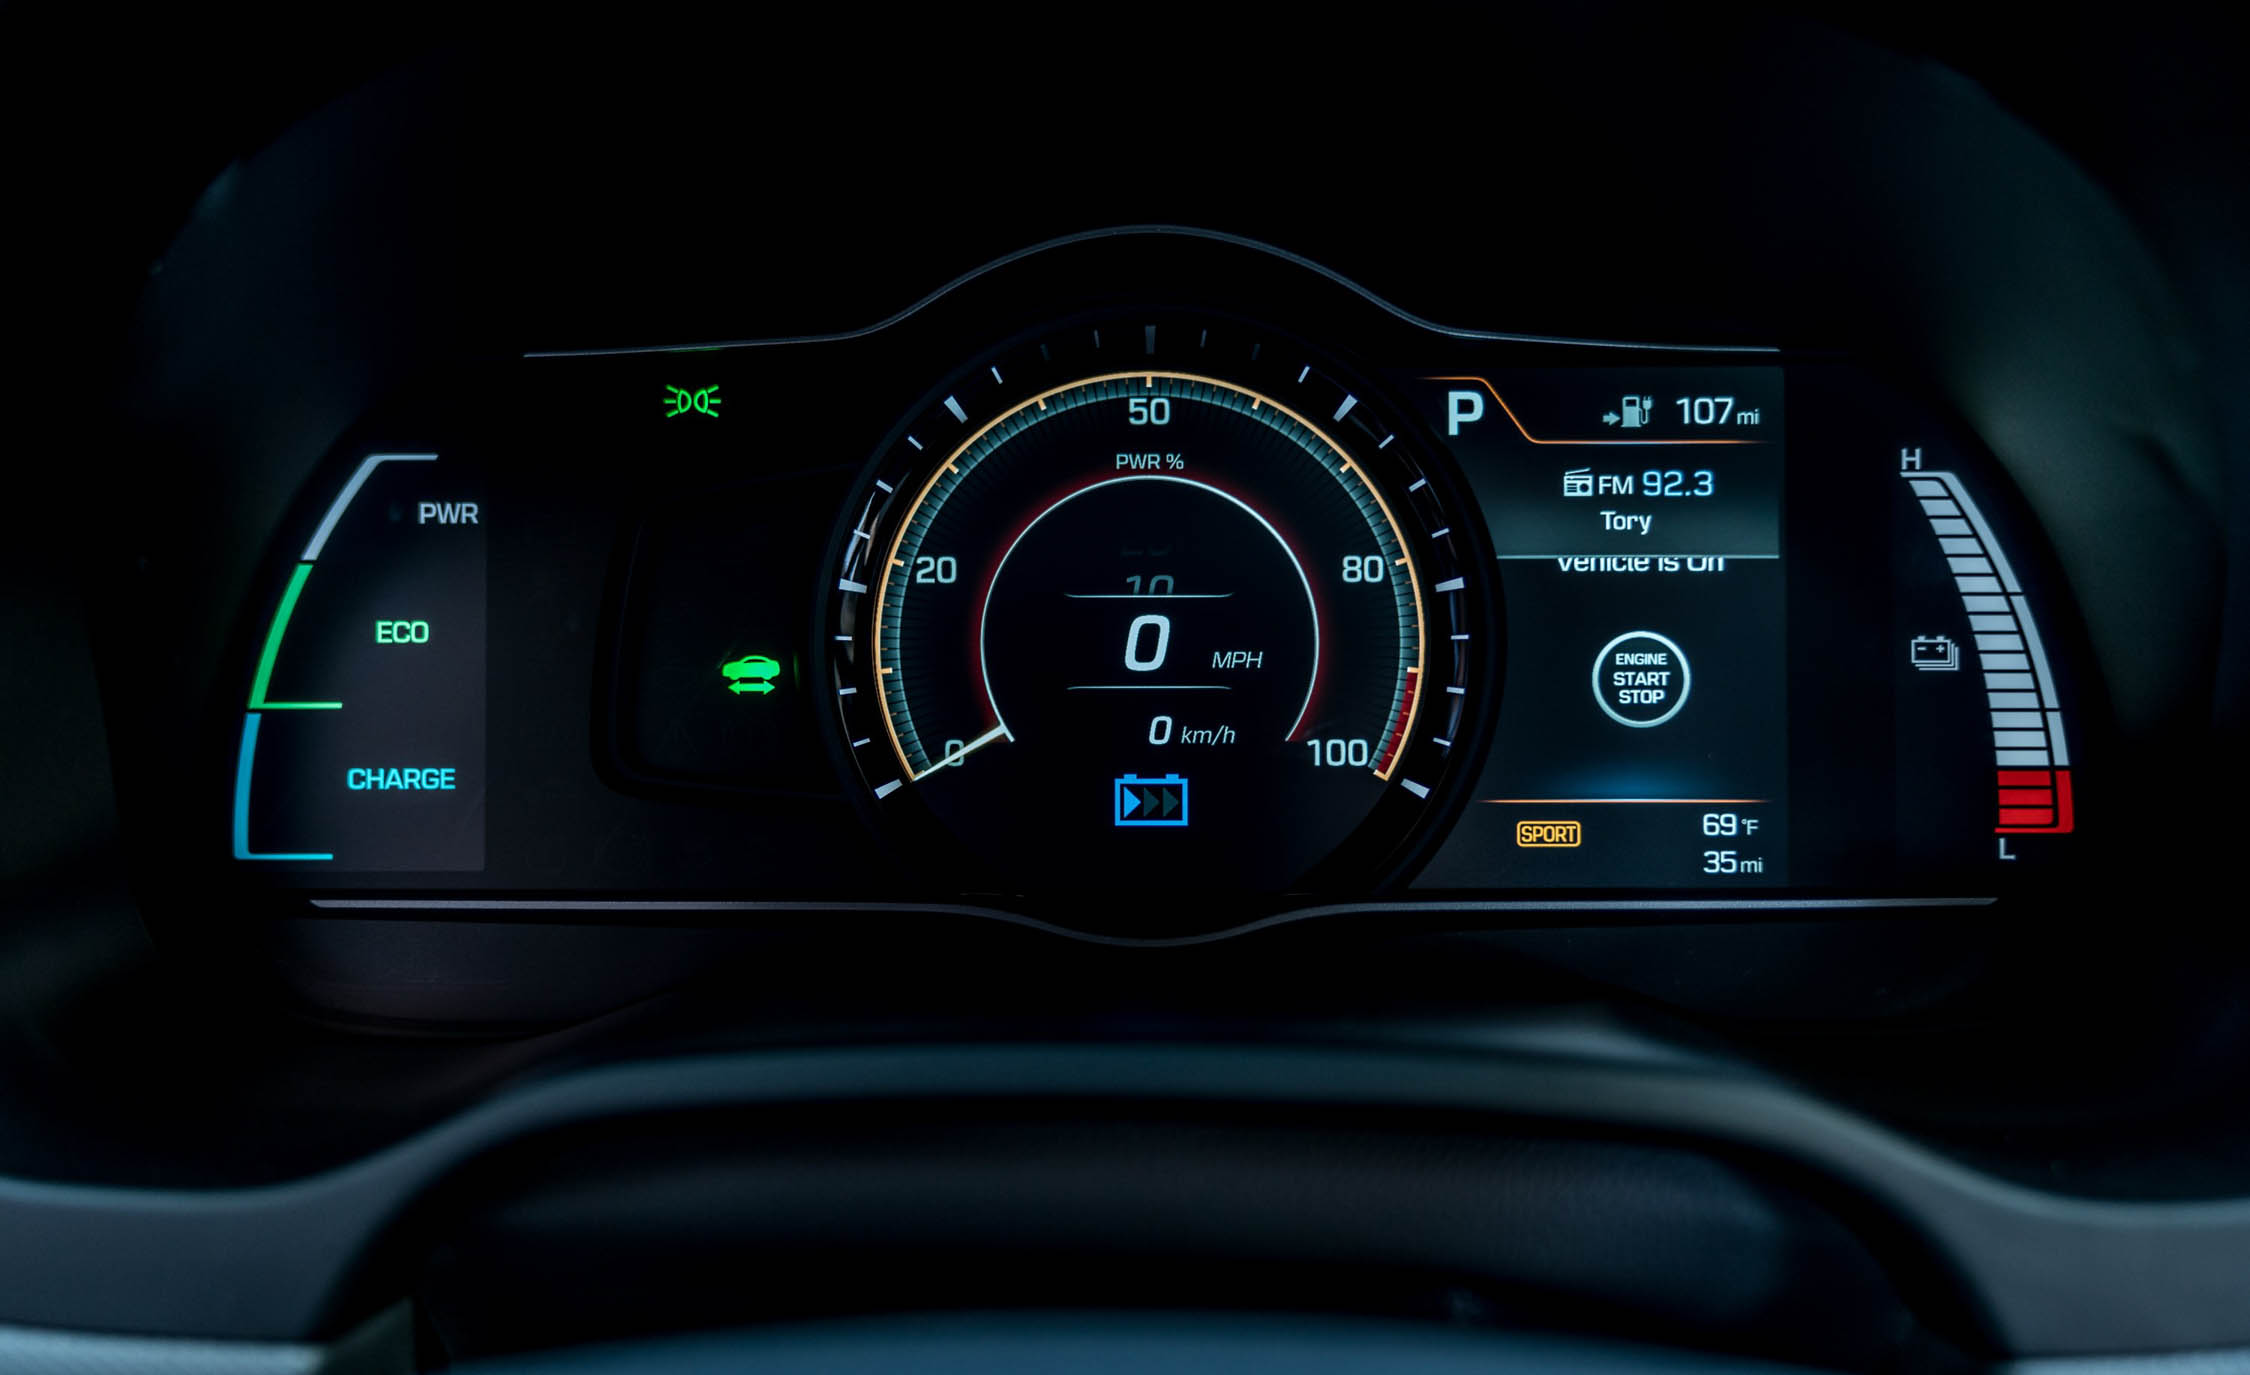 2017 Hyundai Ioniq Electric Interior View Speedometer (Photo 28 of 67)